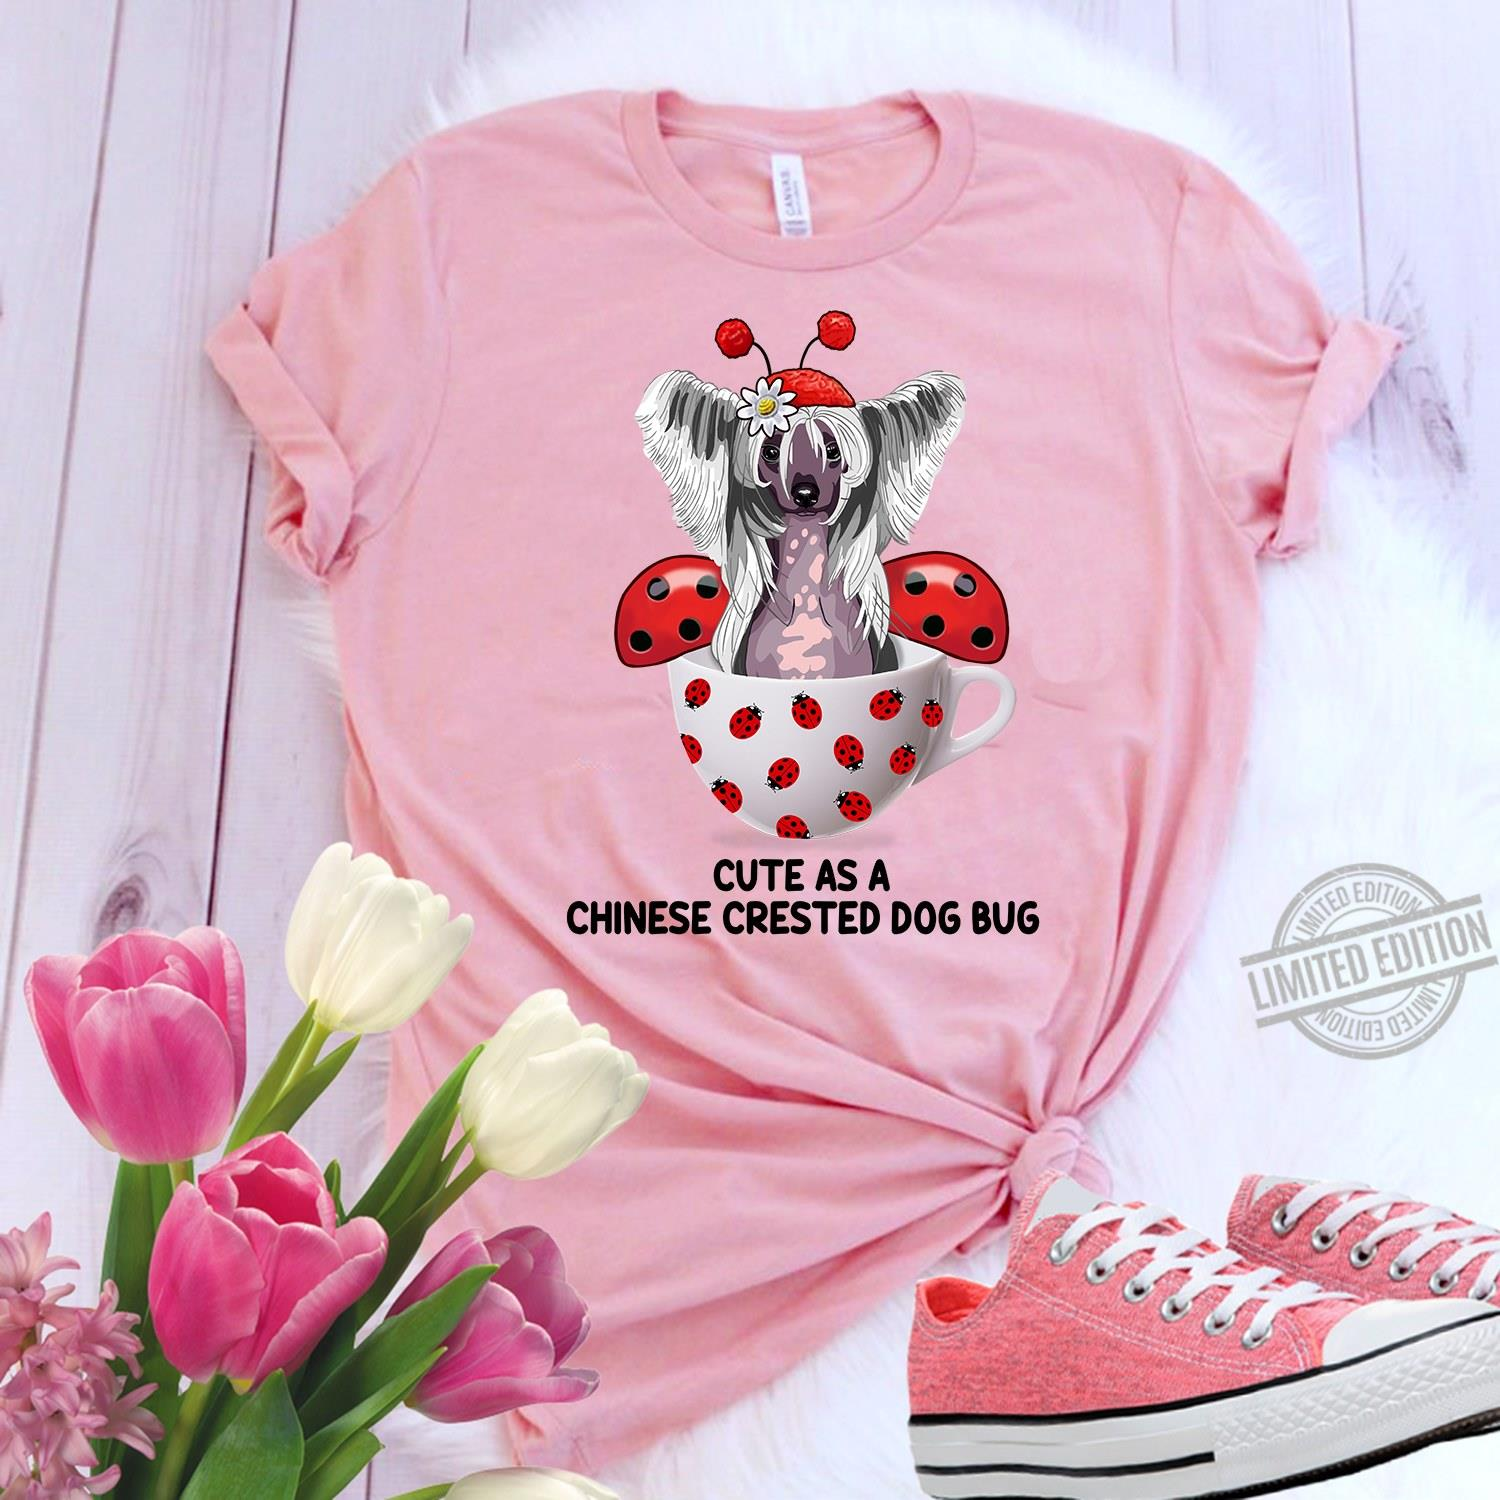 Cute As A Chinese Crested Dog Bug Women Jersey Tank Top